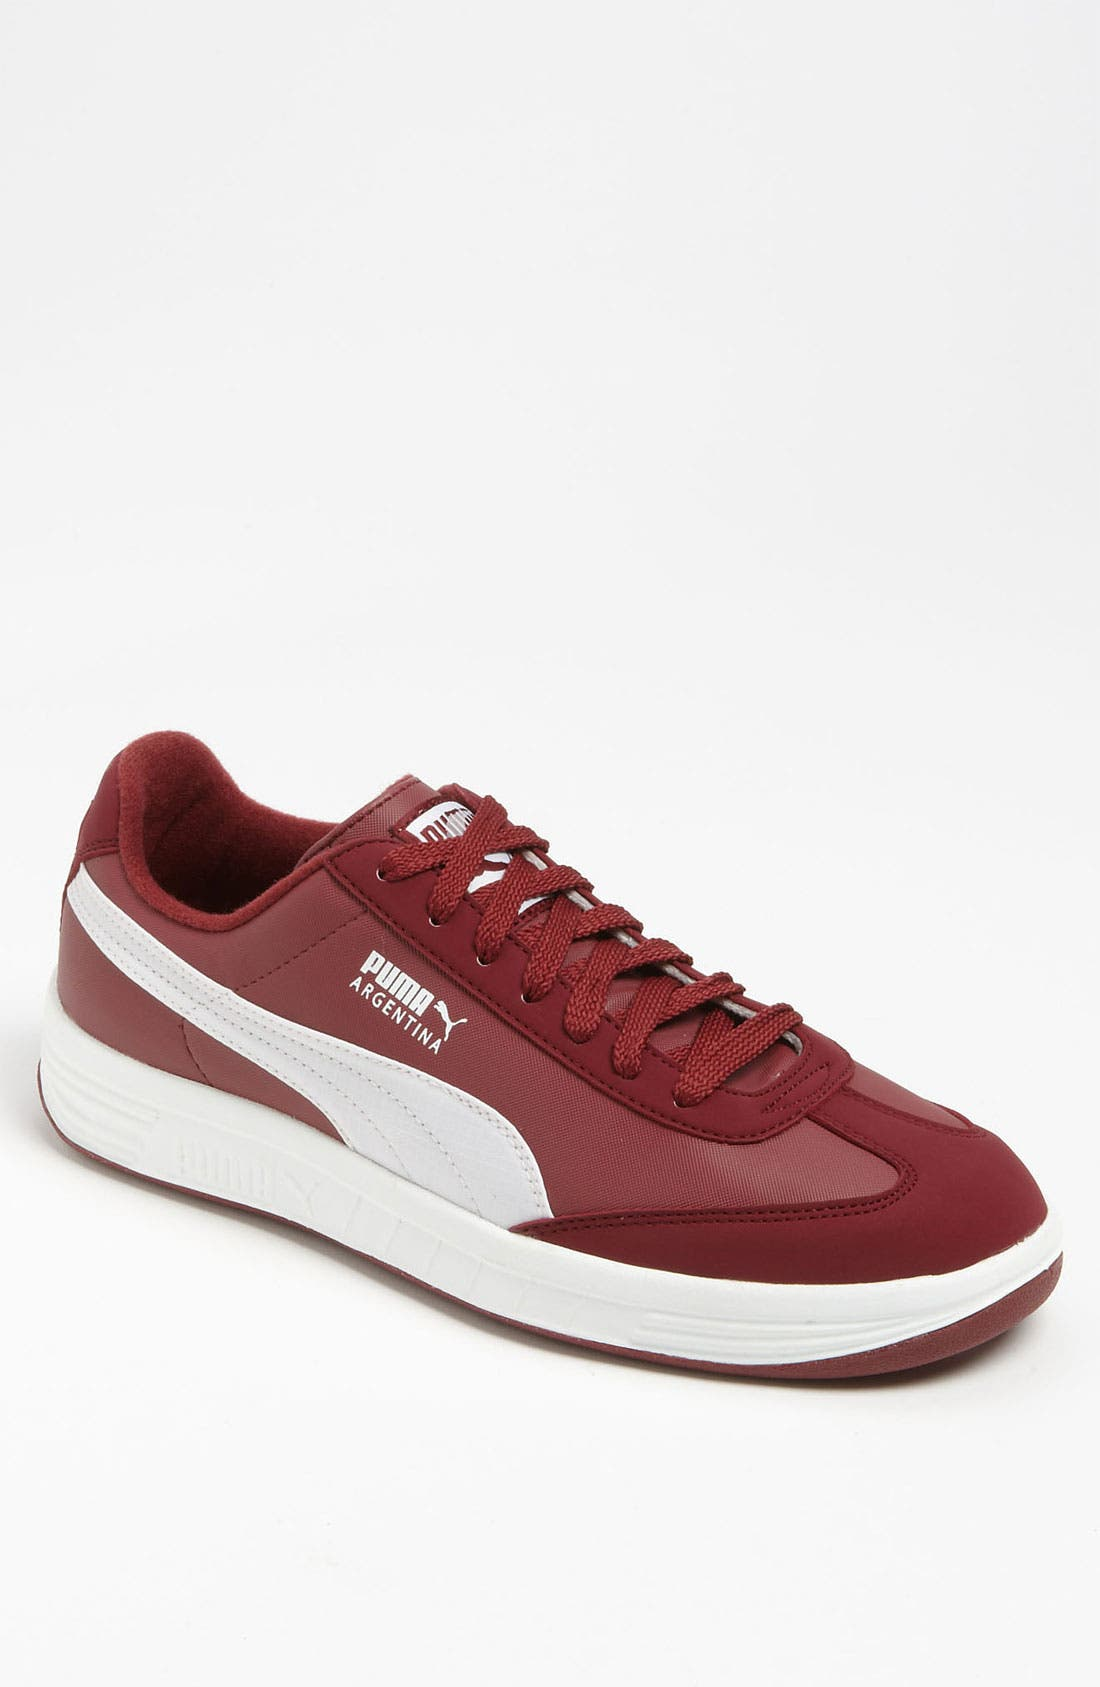 Alternate Image 1 Selected - PUMA 'Argentina' Sneaker (Men)